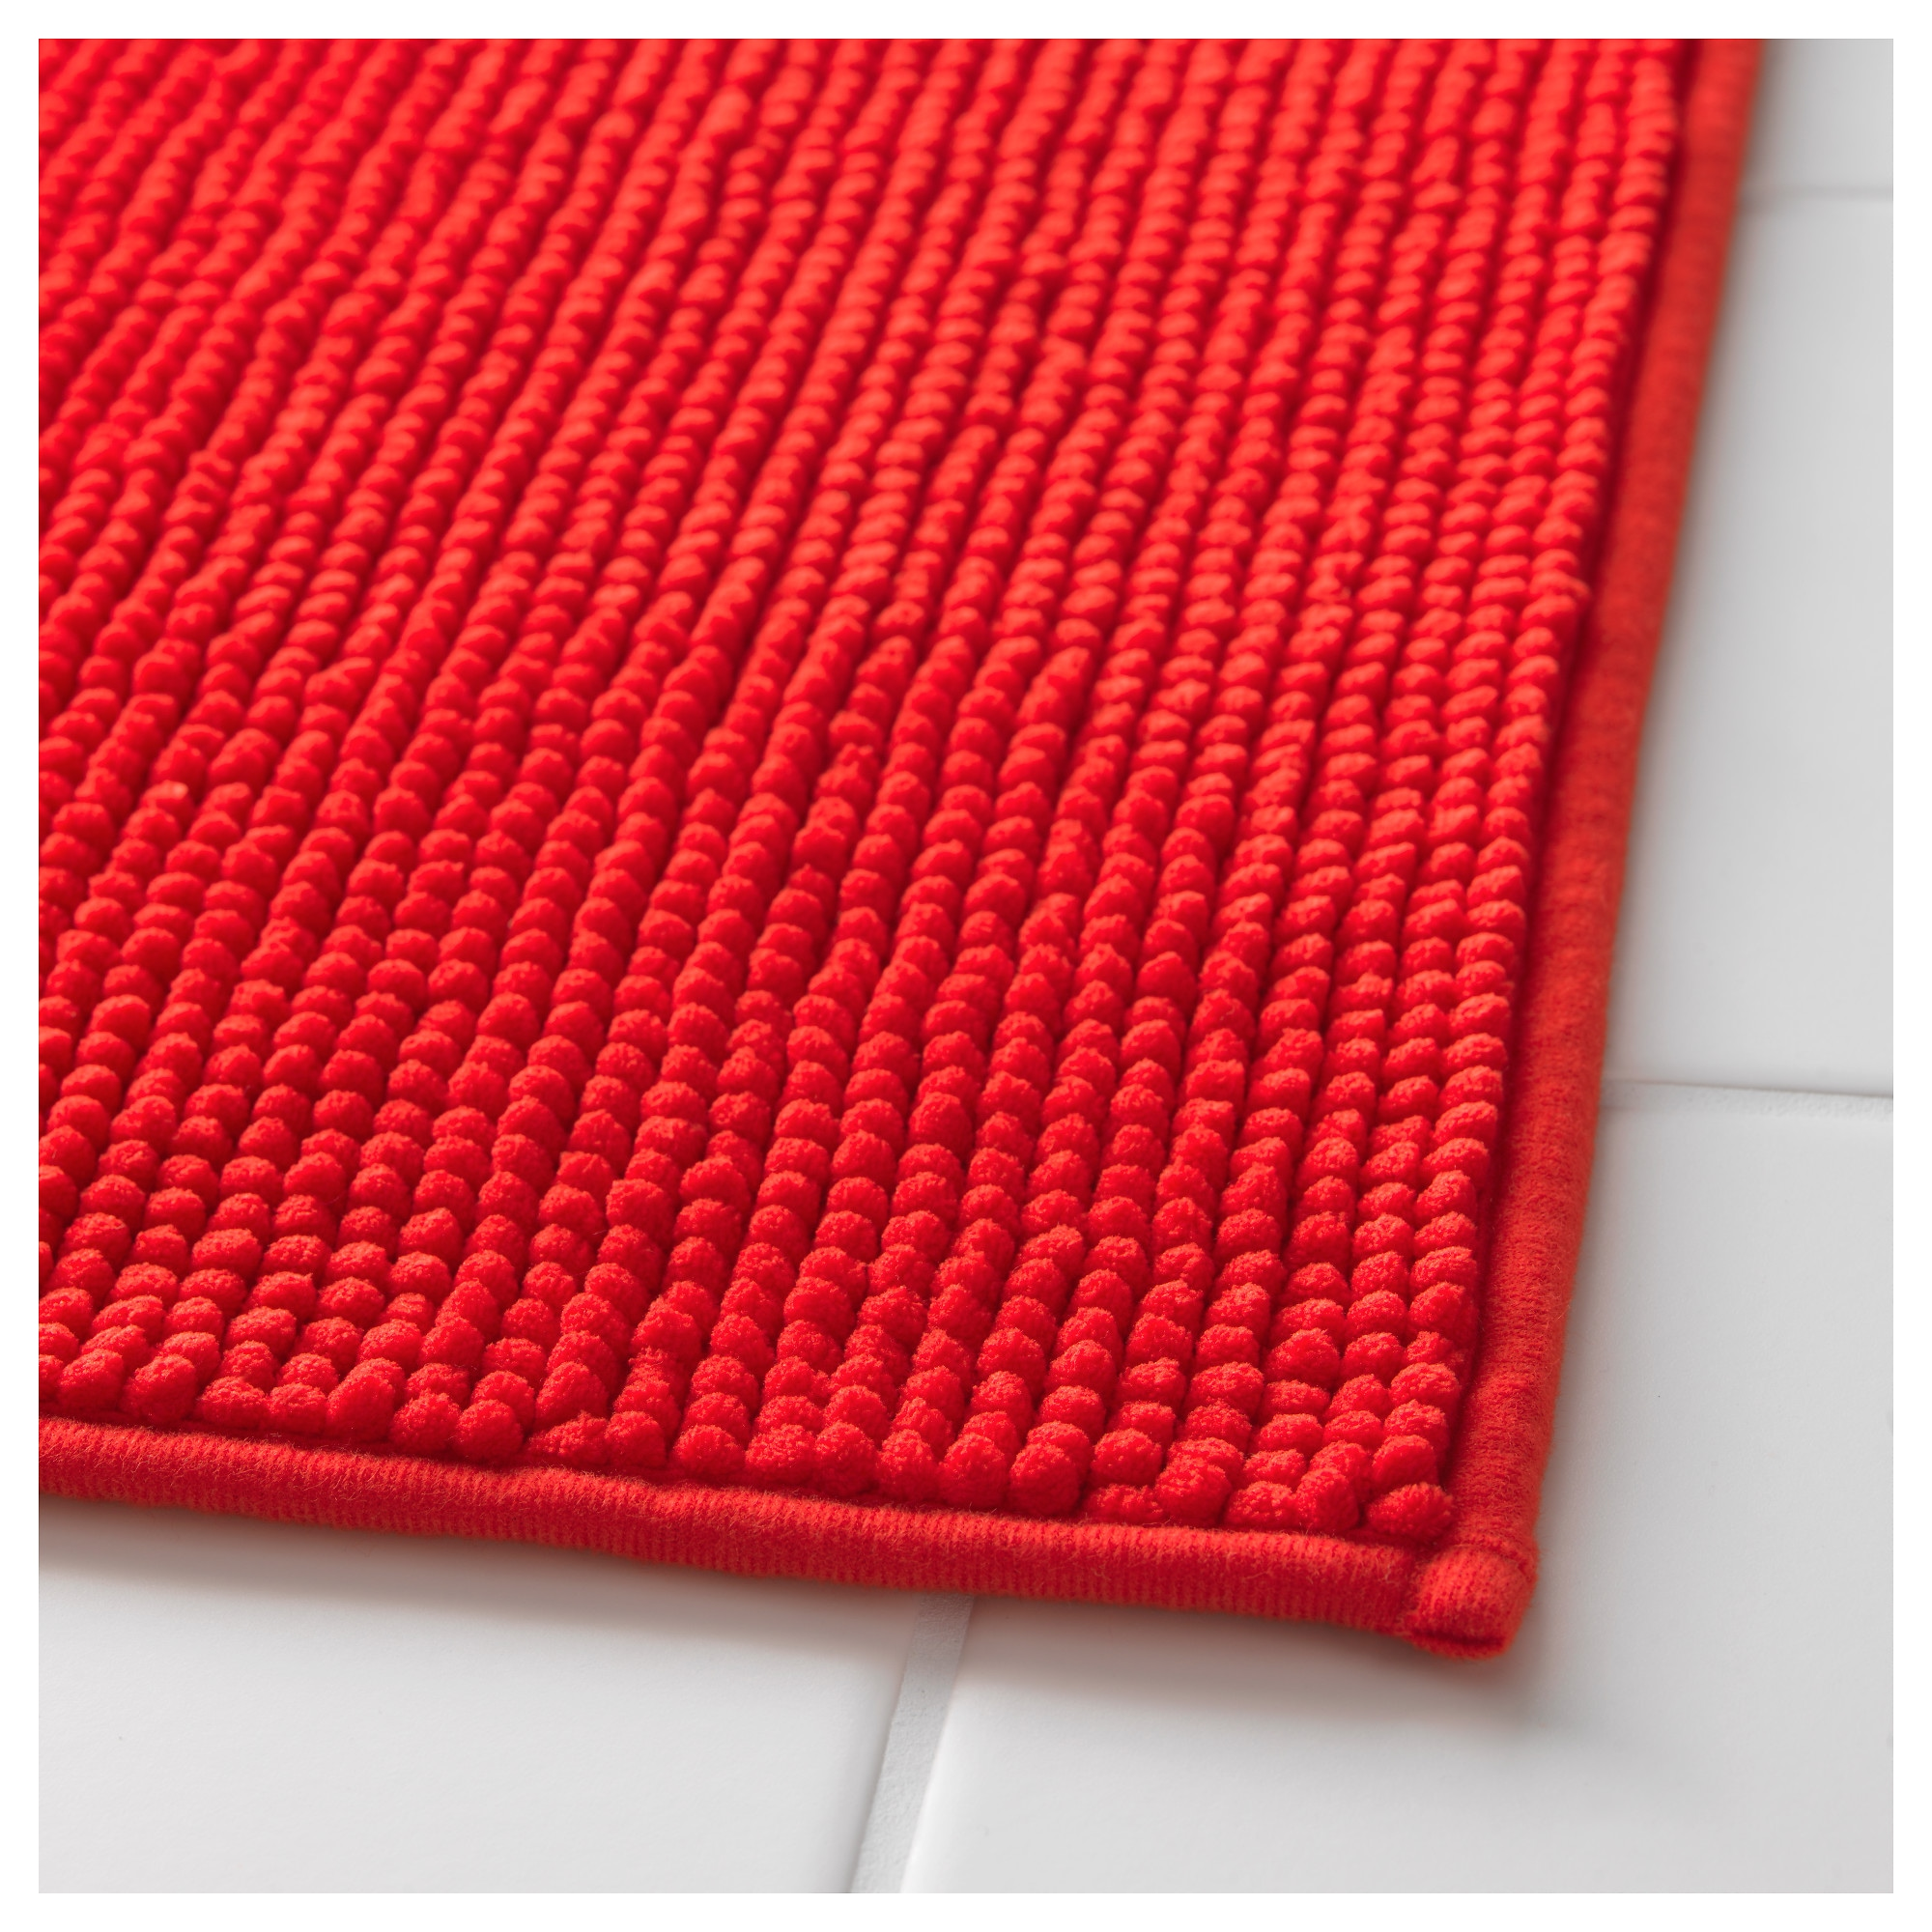 BADAREN Bath Mat IKEA - Bright bath mat for bathroom decorating ideas